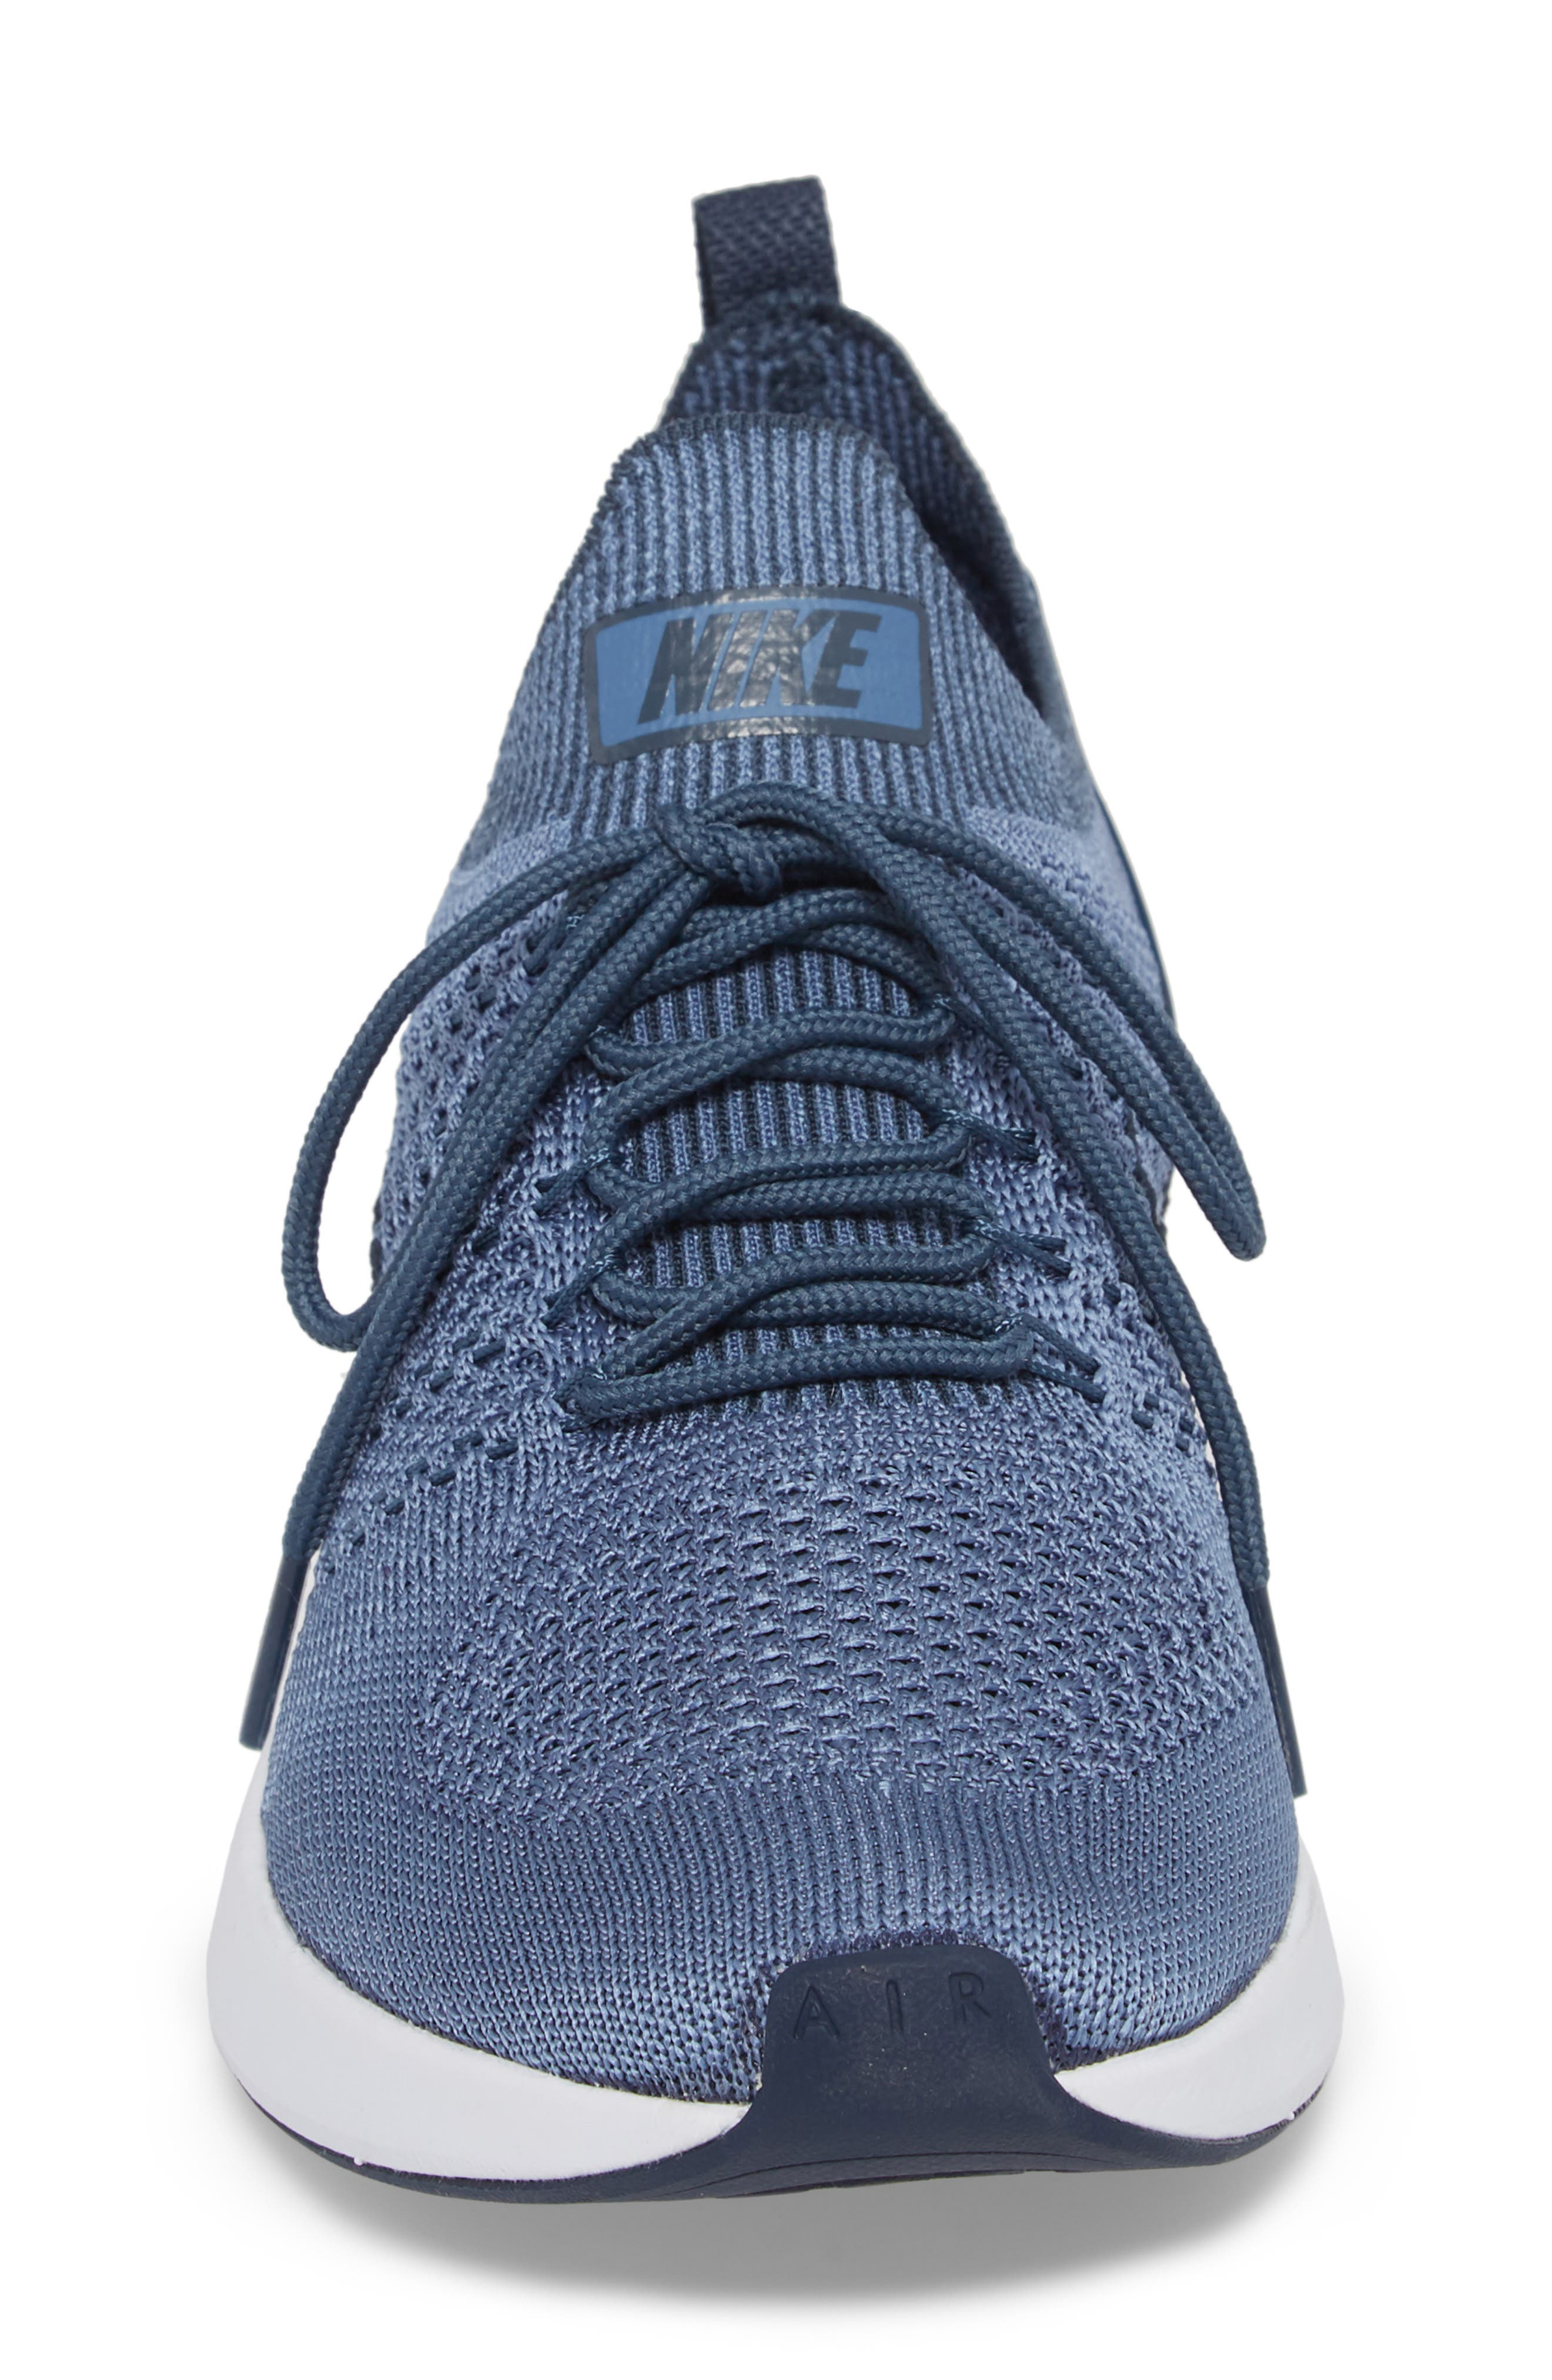 Air Zoom Mariah Flyknit Racer Sneaker,                             Alternate thumbnail 4, color,                             OCEAN FOG/ BLUE/ WHITE